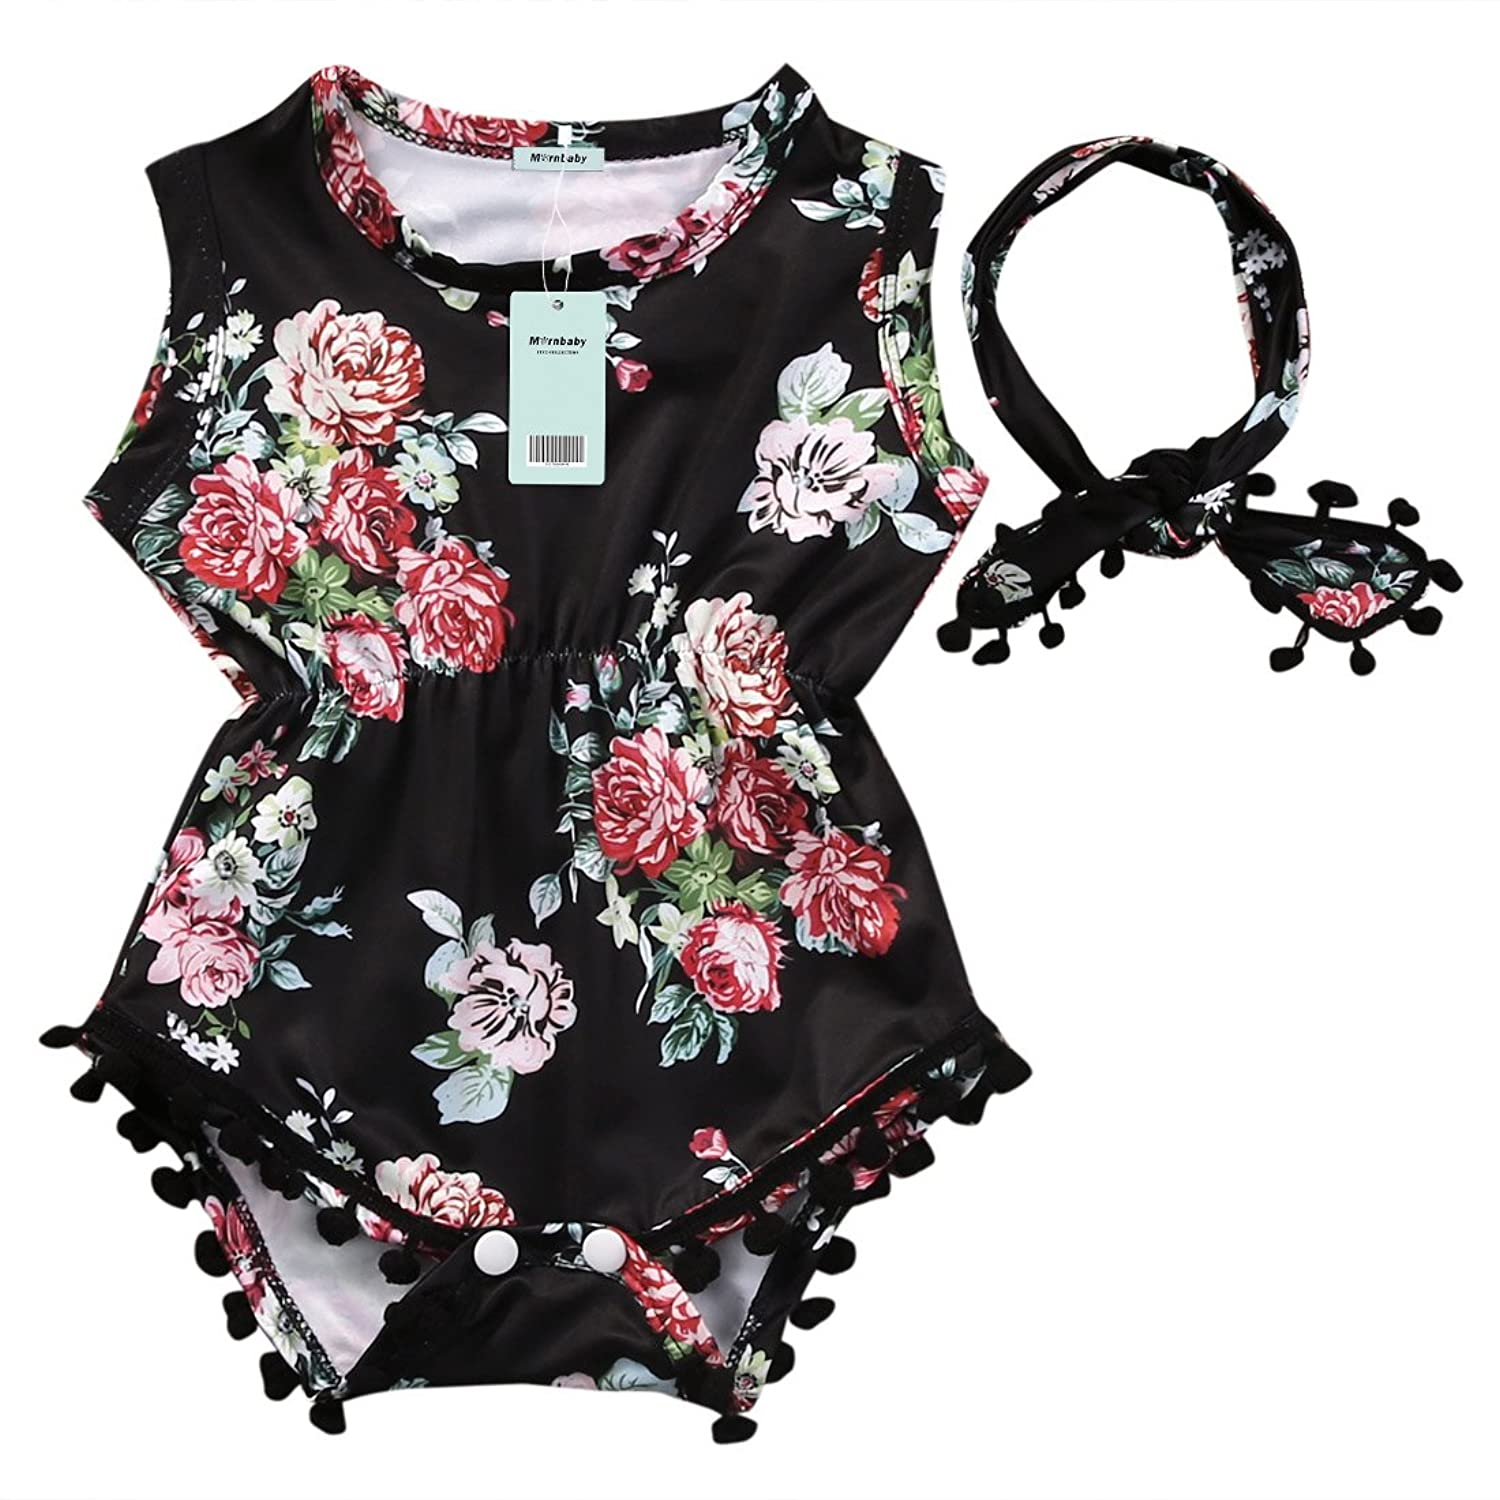 Amazon Best Sellers Best Baby Girls Clothing